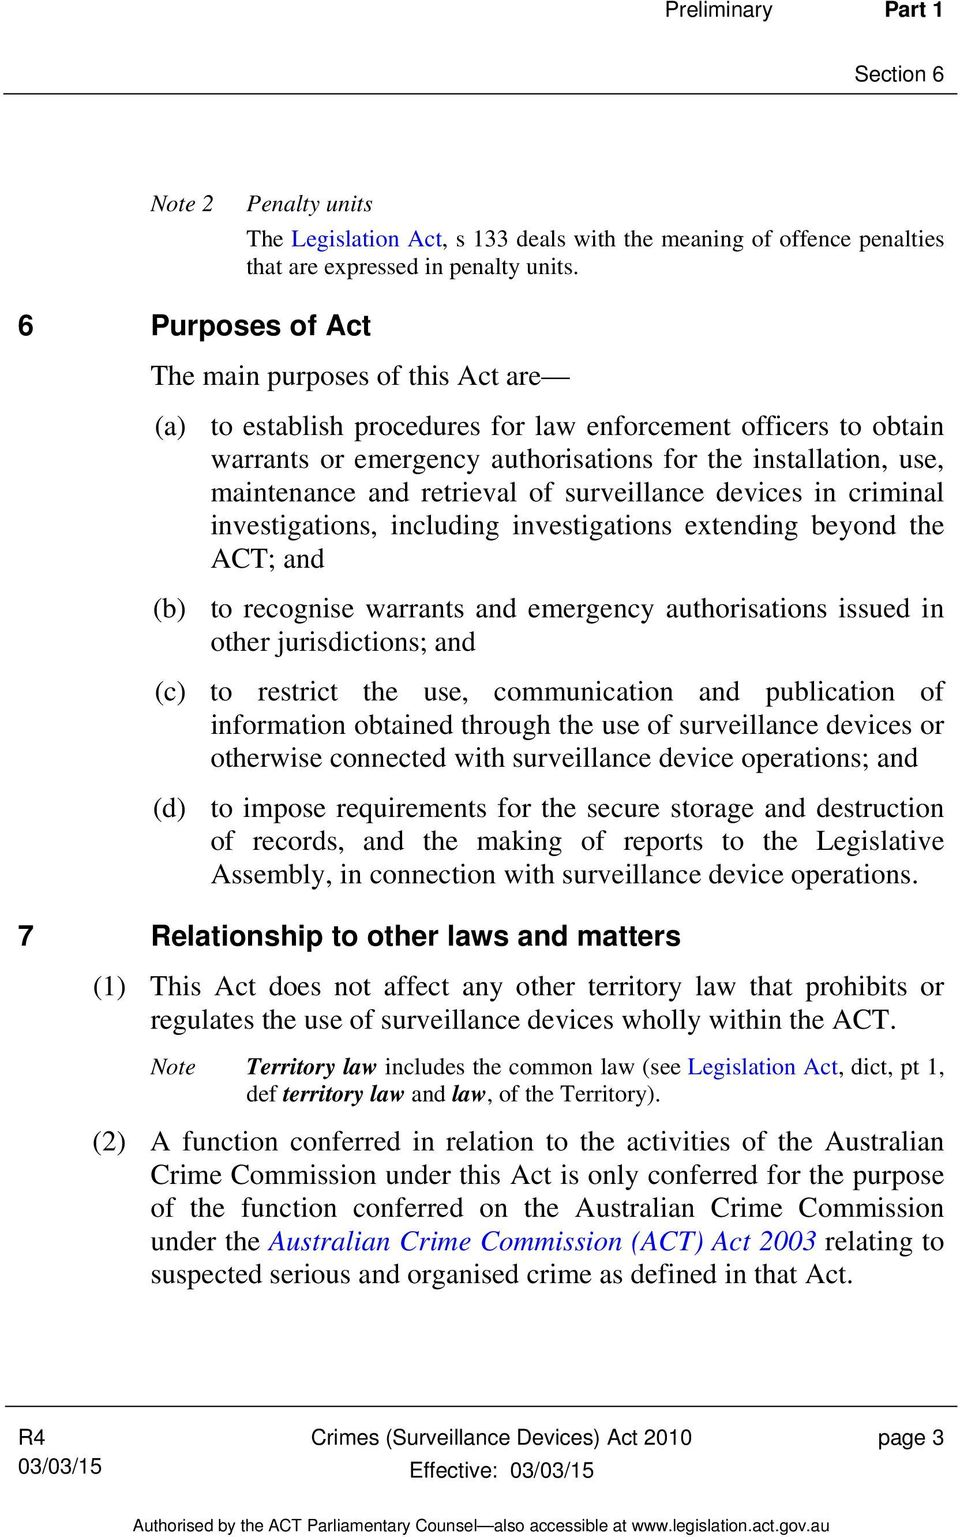 retrieval of surveillance devices in criminal investigations, including investigations extending beyond the ACT; and (b) to recognise warrants and emergency authorisations issued in other